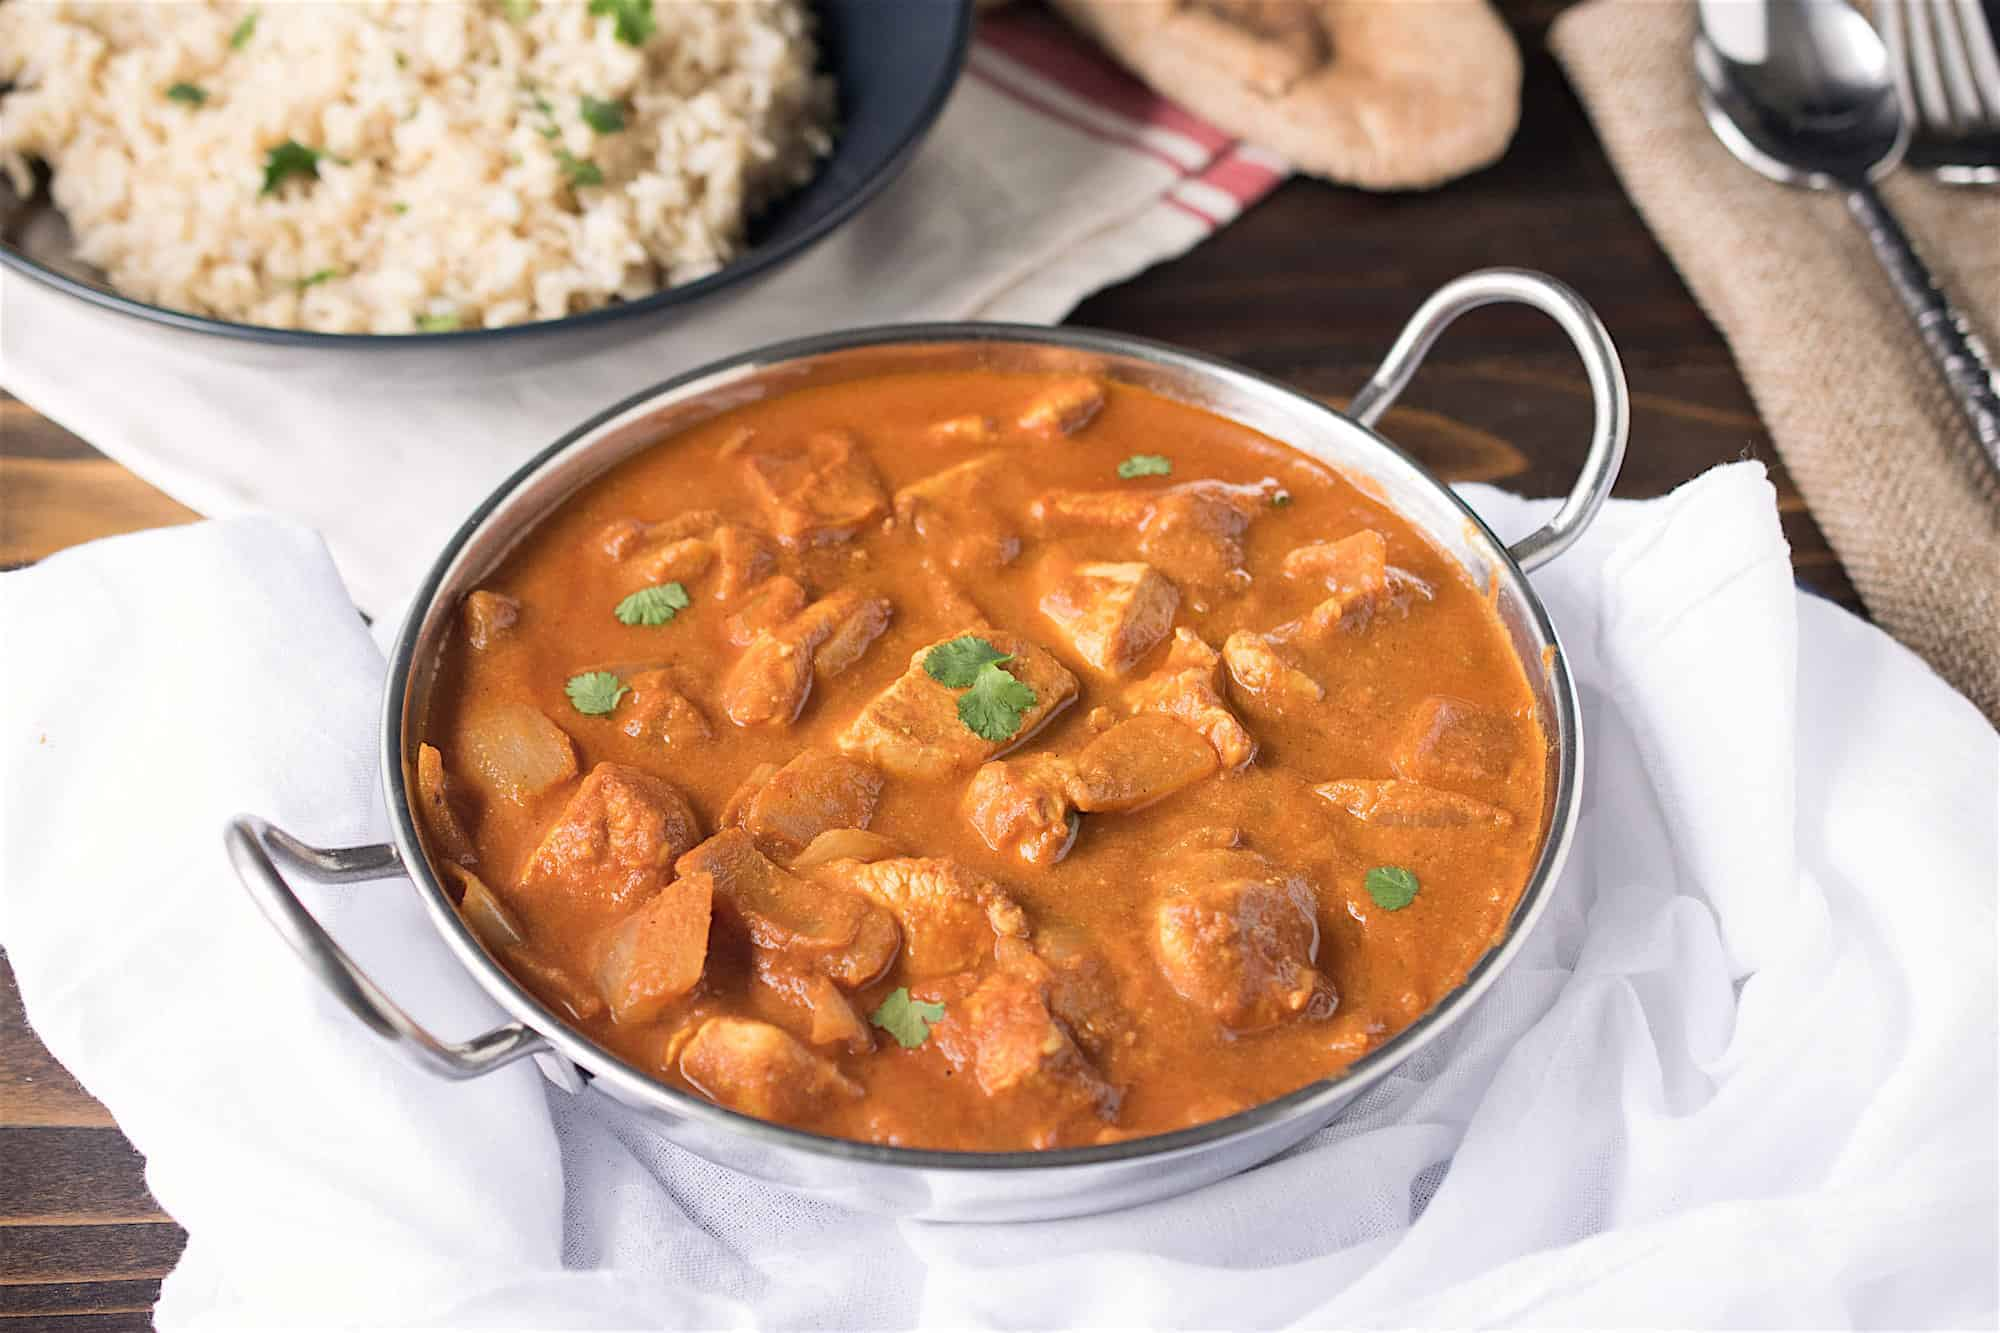 Chicken tikka masala in a tradtional Indian serving bowl